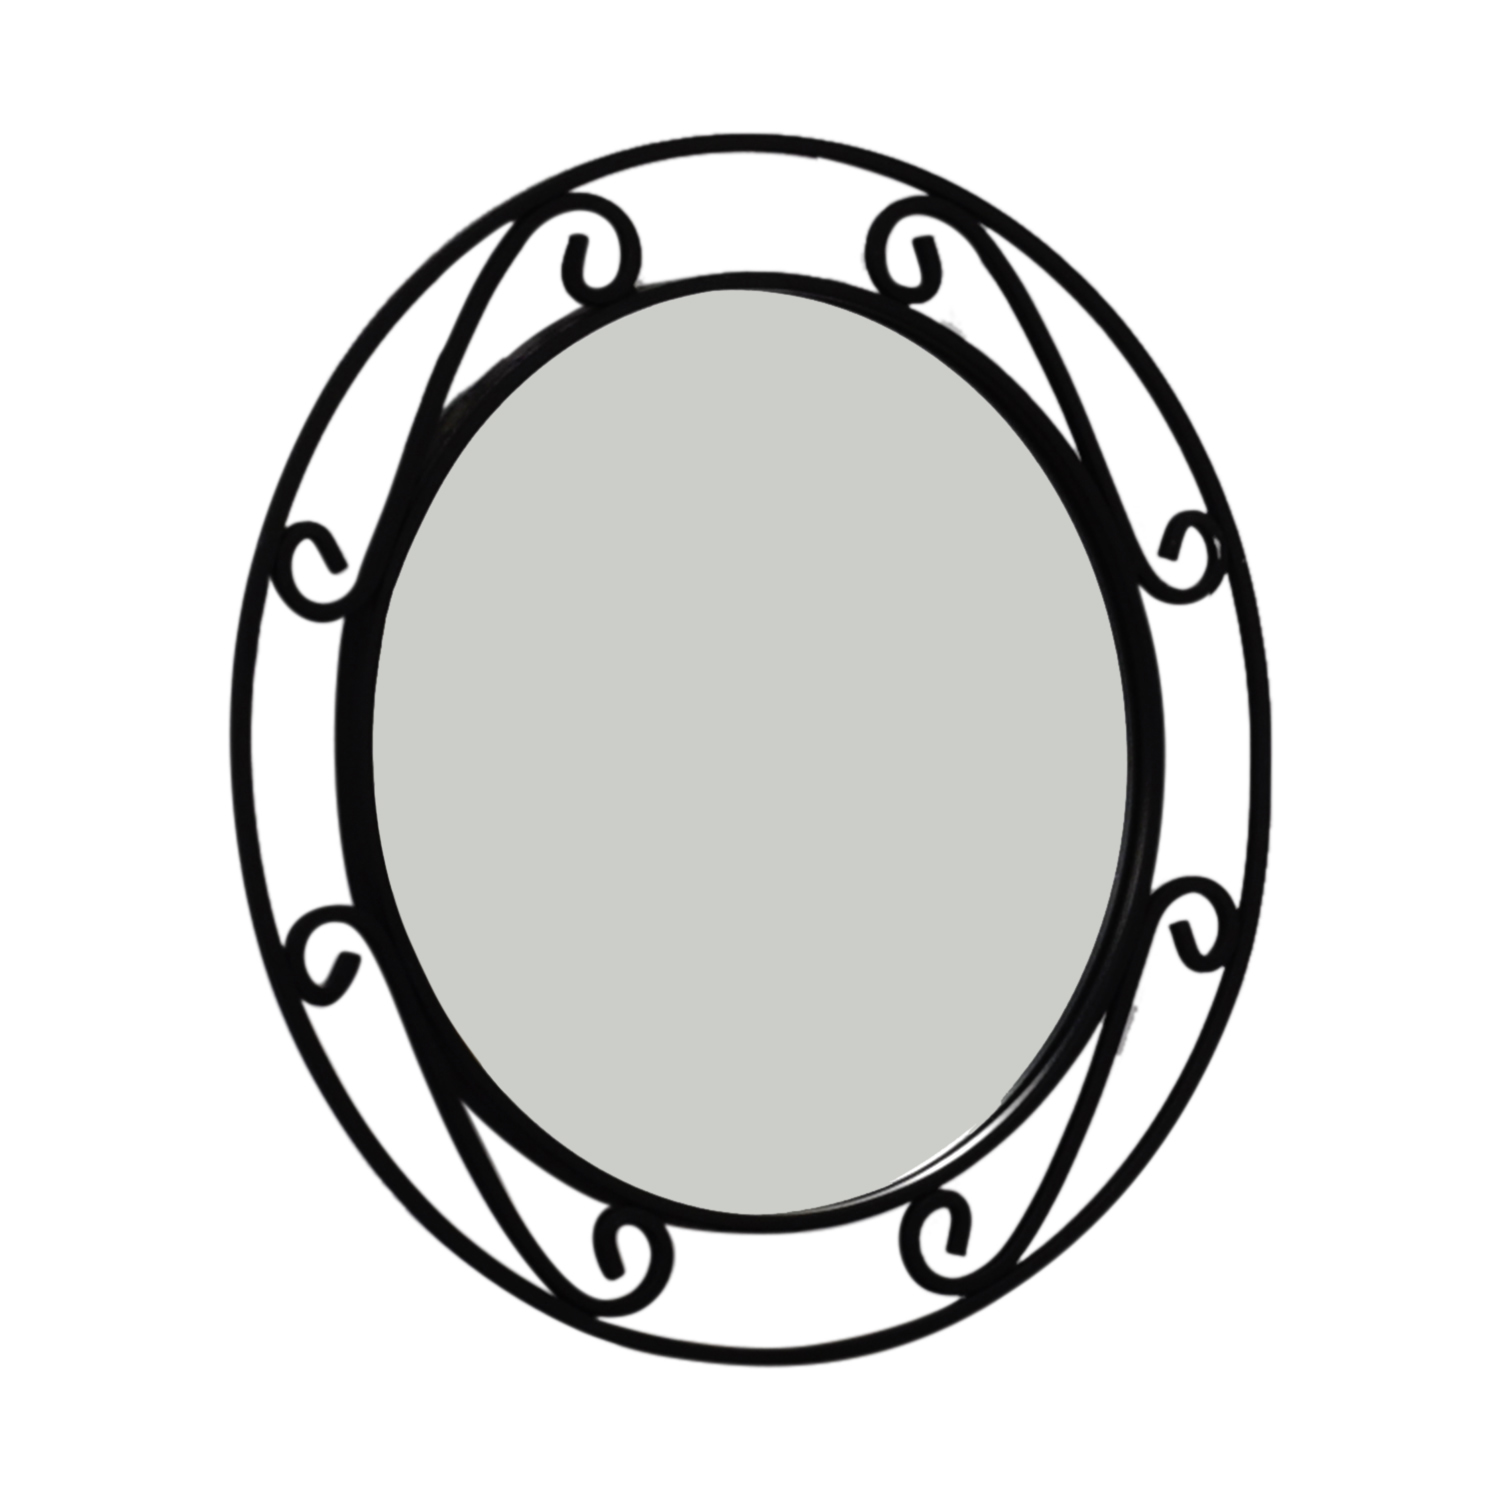 Wrought Iron Black Round Mirror Black